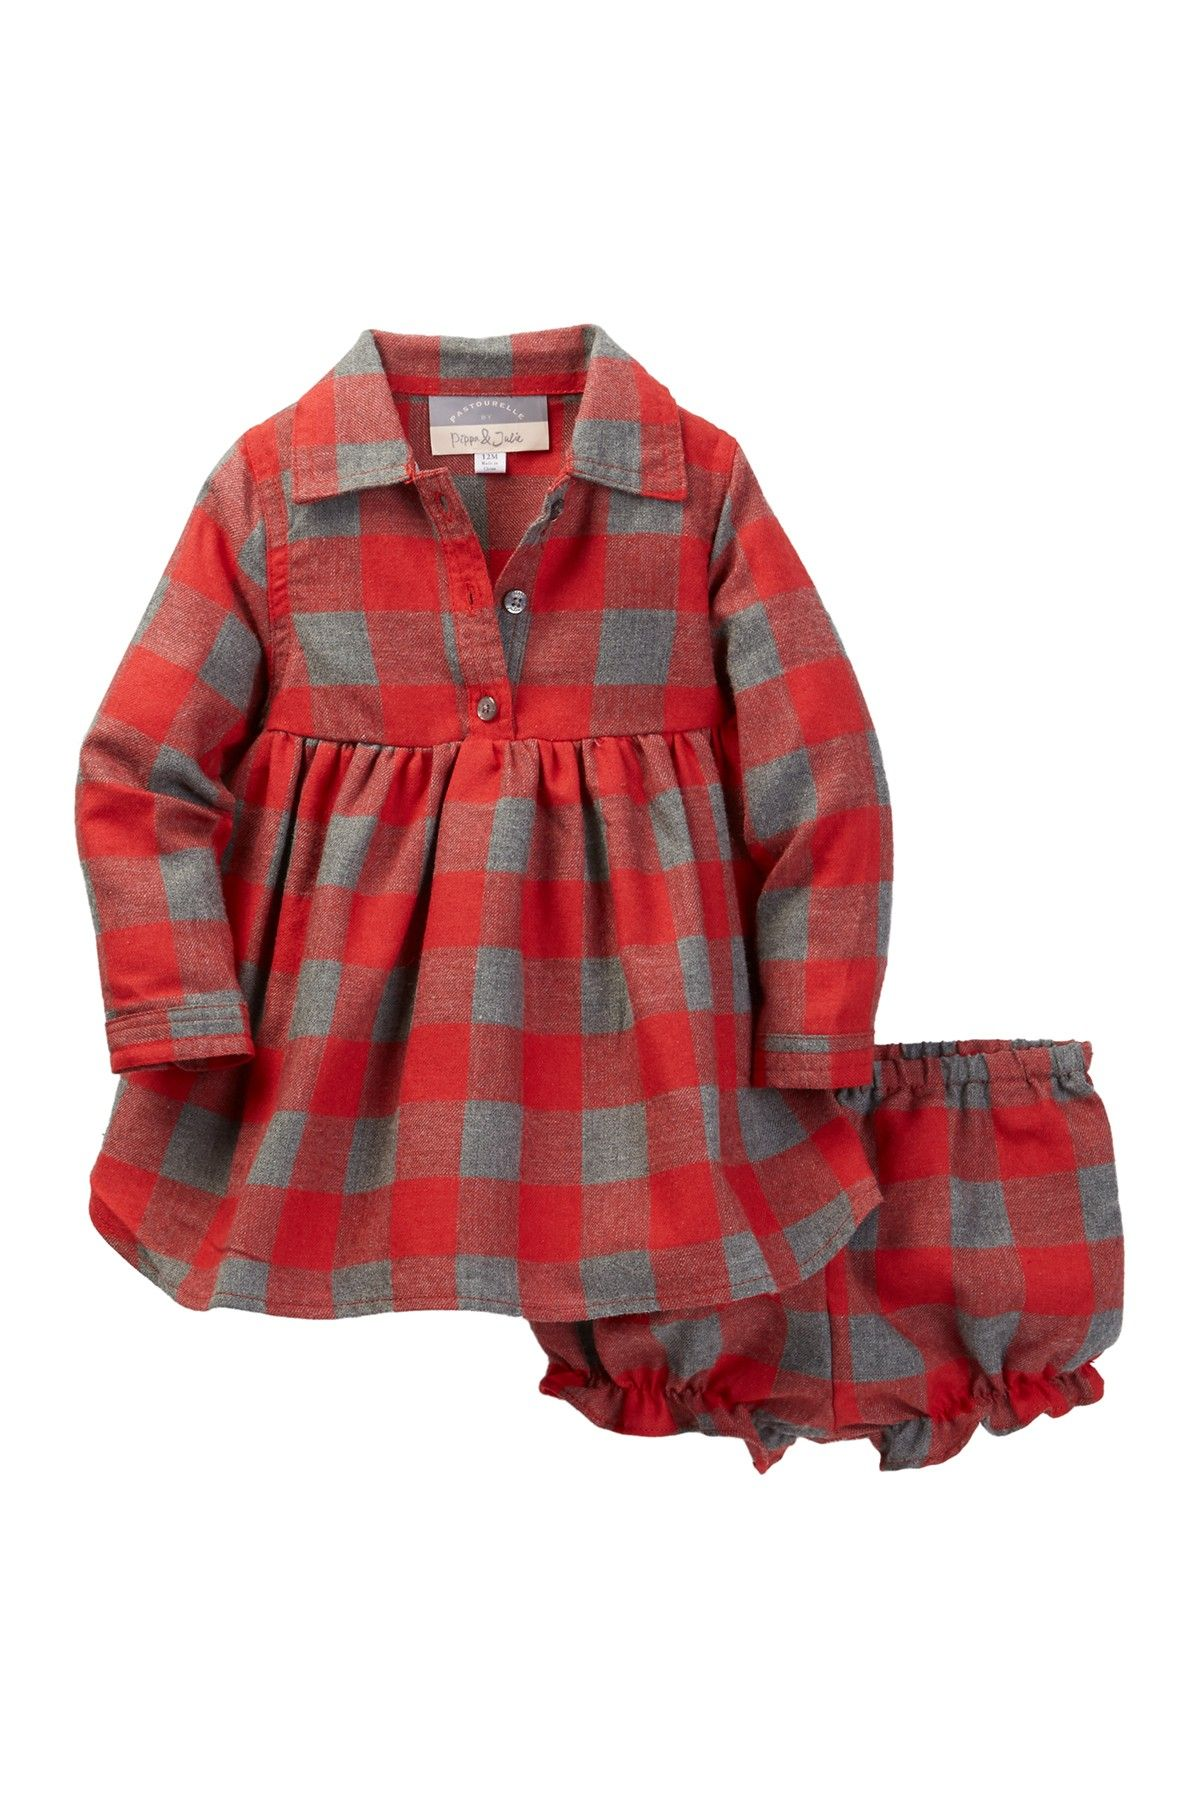 Flannel shirt for girls  Pastourelle by Pippa and Julie Buffalo Plaid Shirt Dress Baby Girls